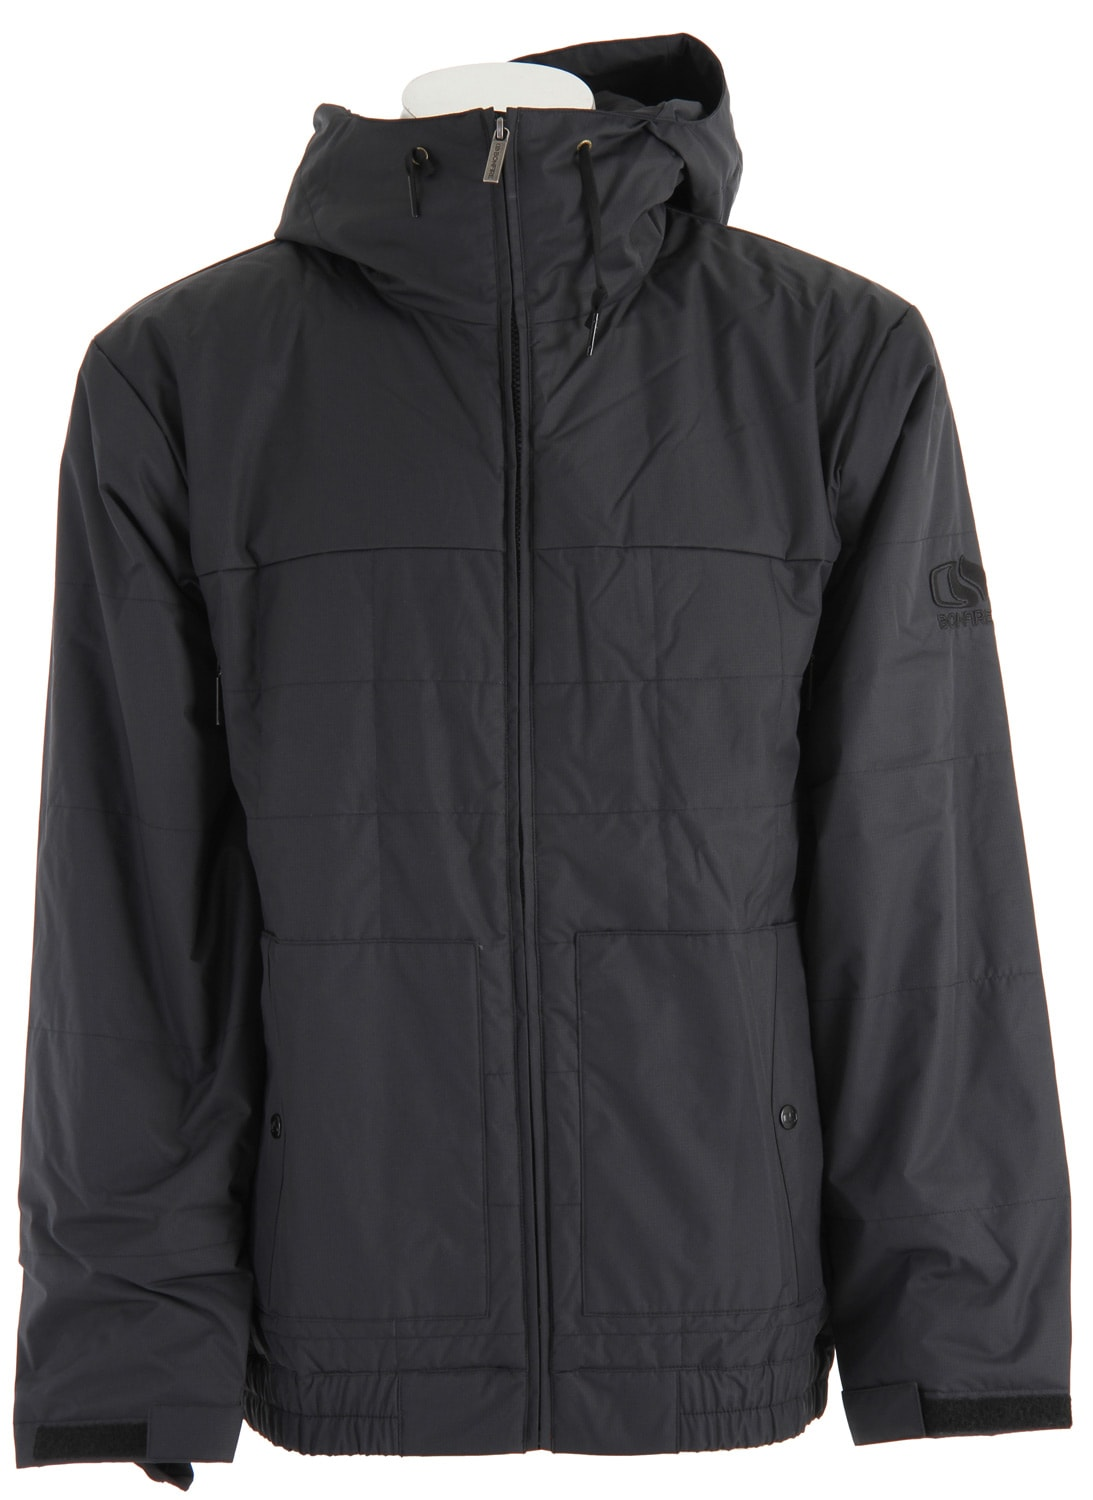 Bonfire Essential Awesome Jacket Black - Men's